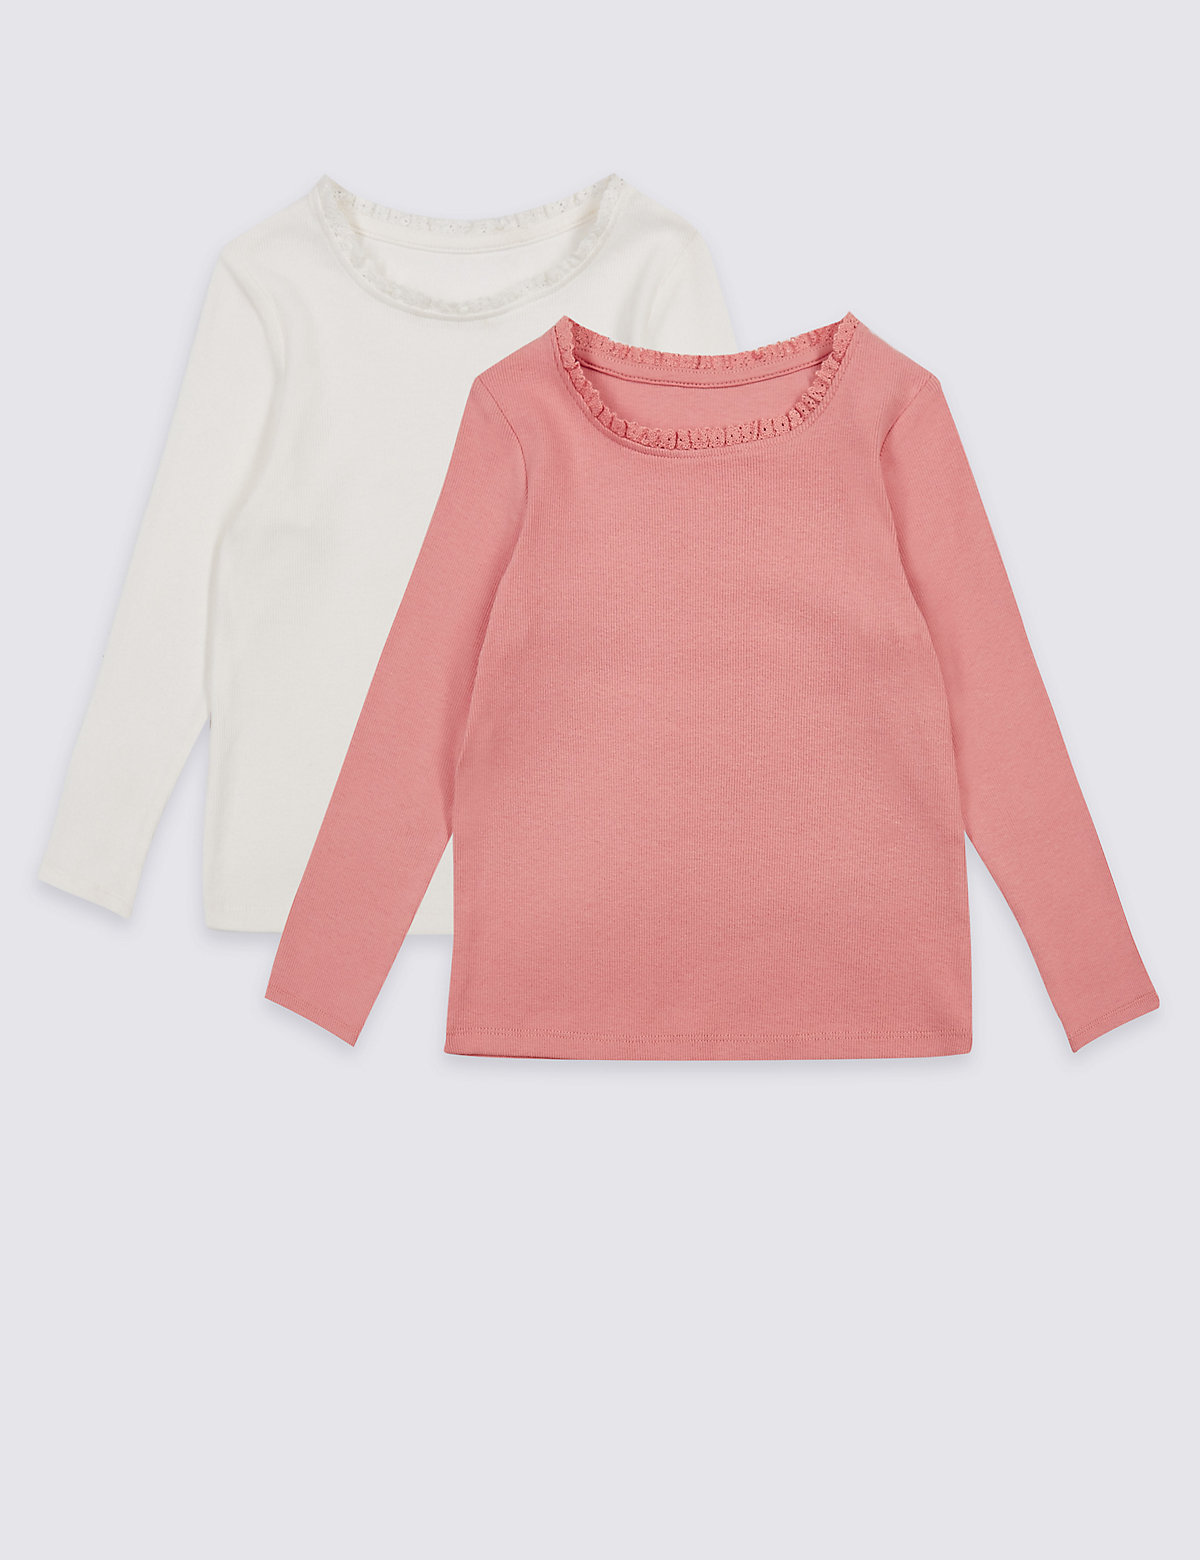 2 Pack Cotton Tops with Stretch (3 Months - 5 Years)